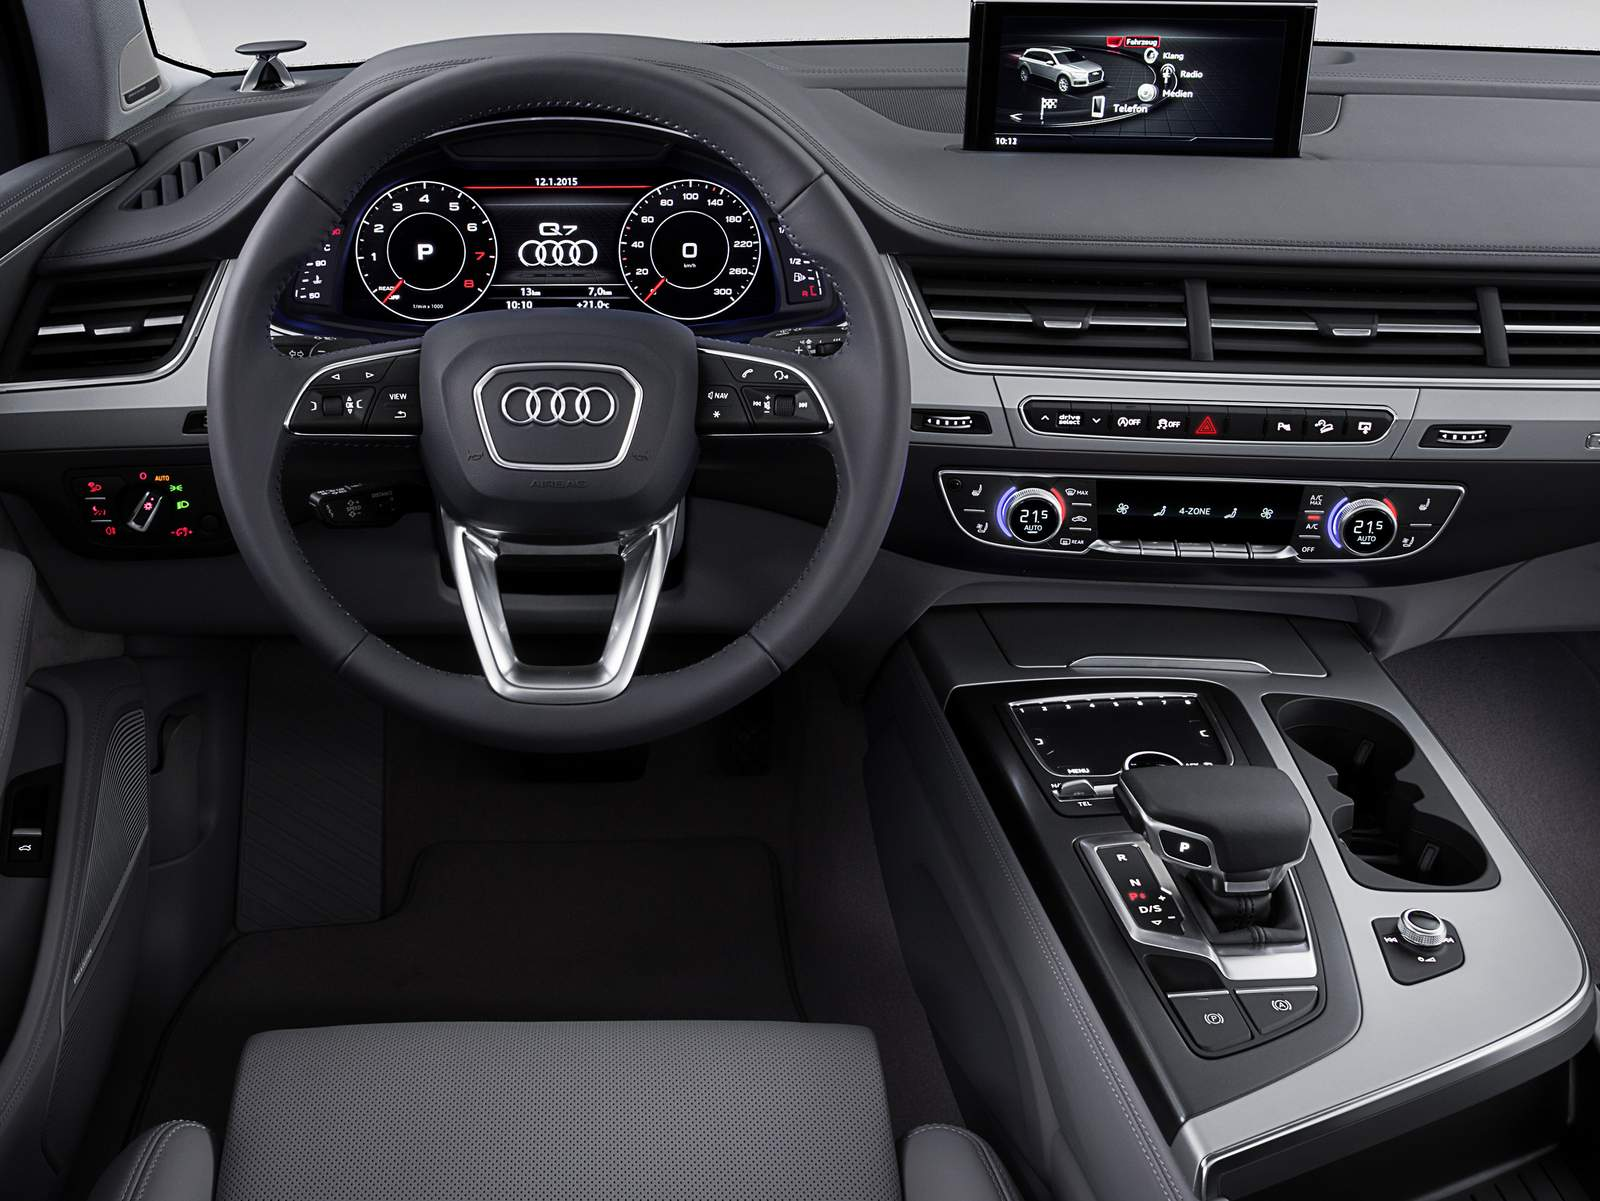 novo audi q7 2015 fotos e detalhes oficiais s o divulgados car blog br. Black Bedroom Furniture Sets. Home Design Ideas